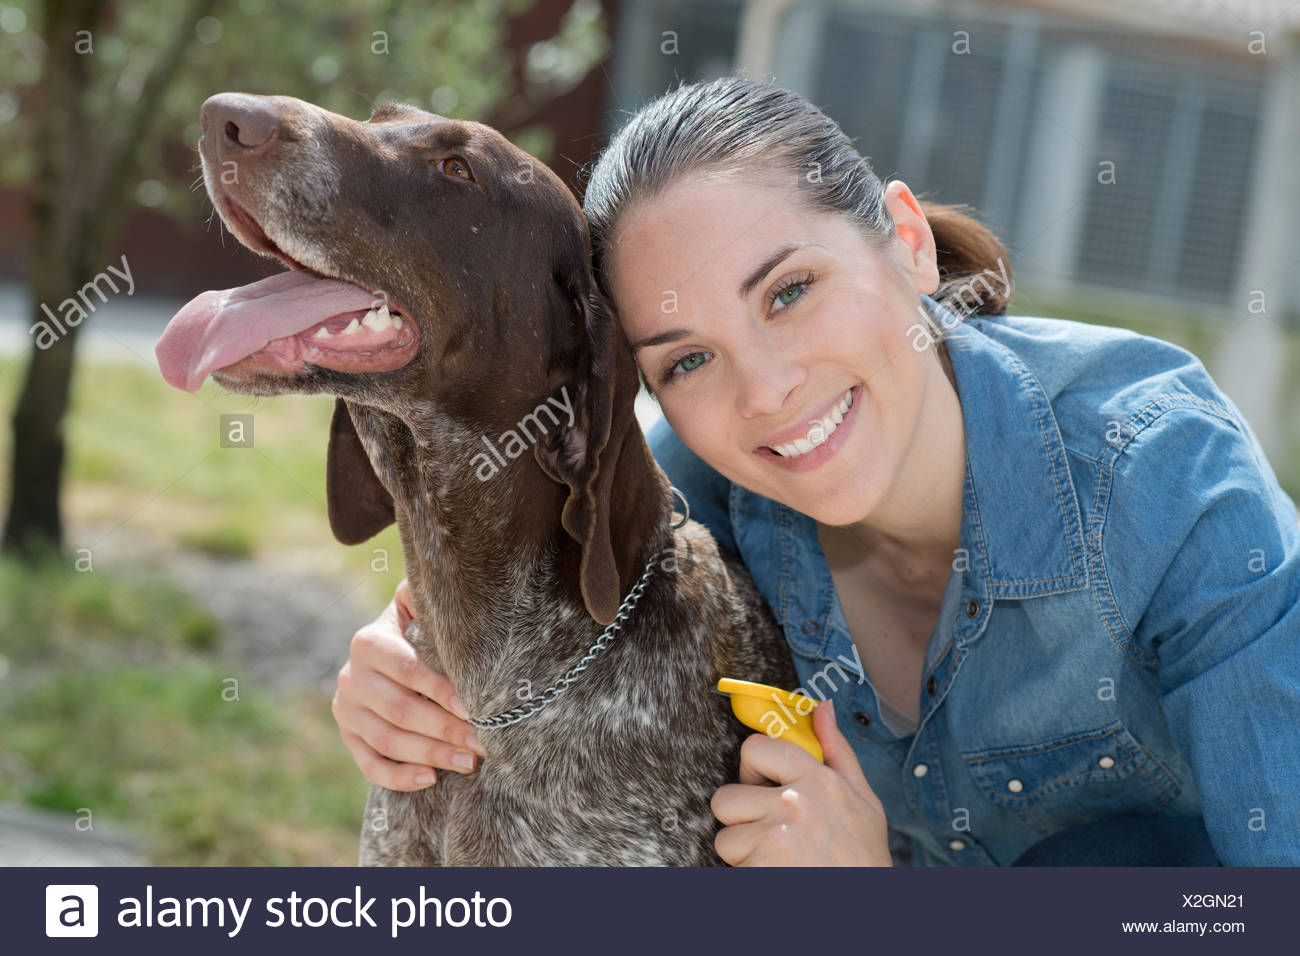 female vet stroking dog at animal shelter - Stock Image